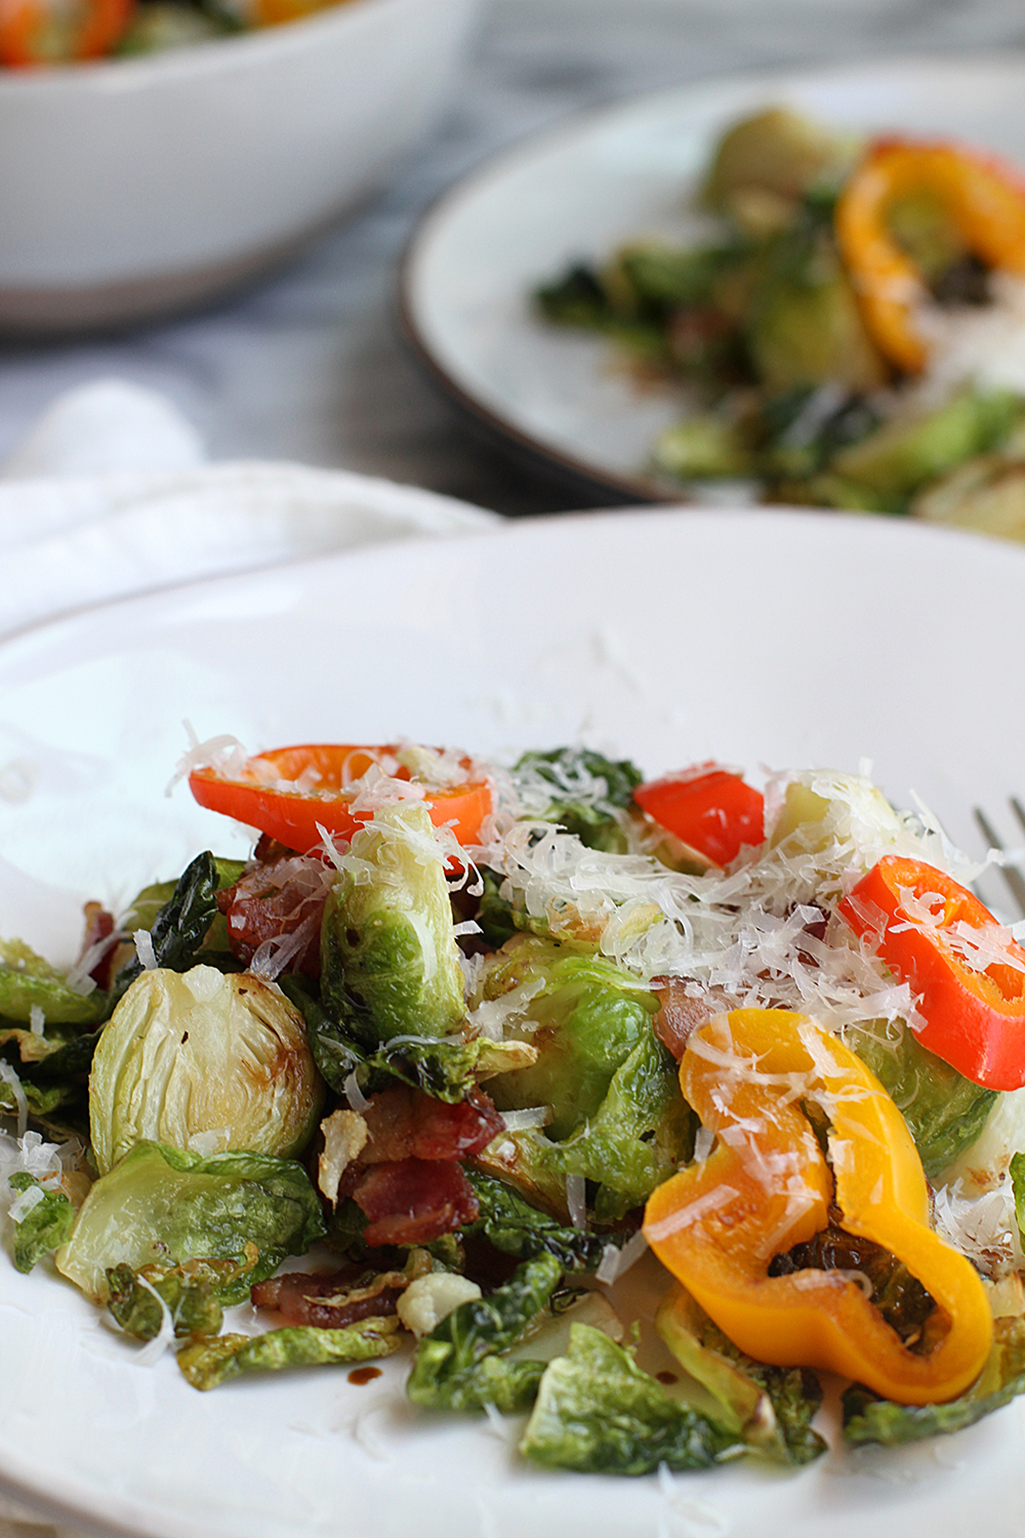 ojai-valley-inn-brussels-sprouts-005